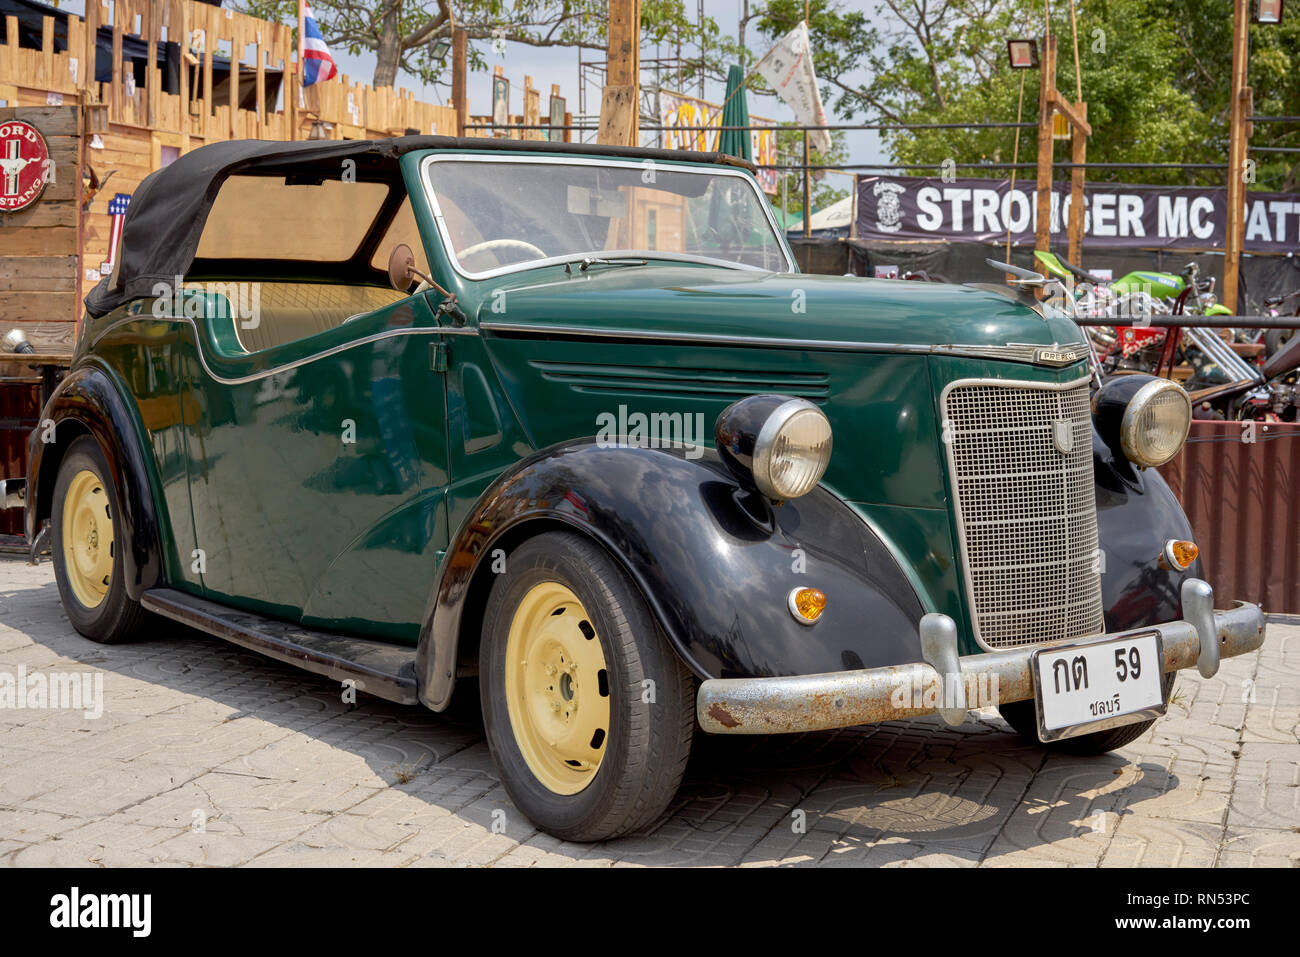 Ford Prefect convertible, vintage 1939 rare car - Stock Image